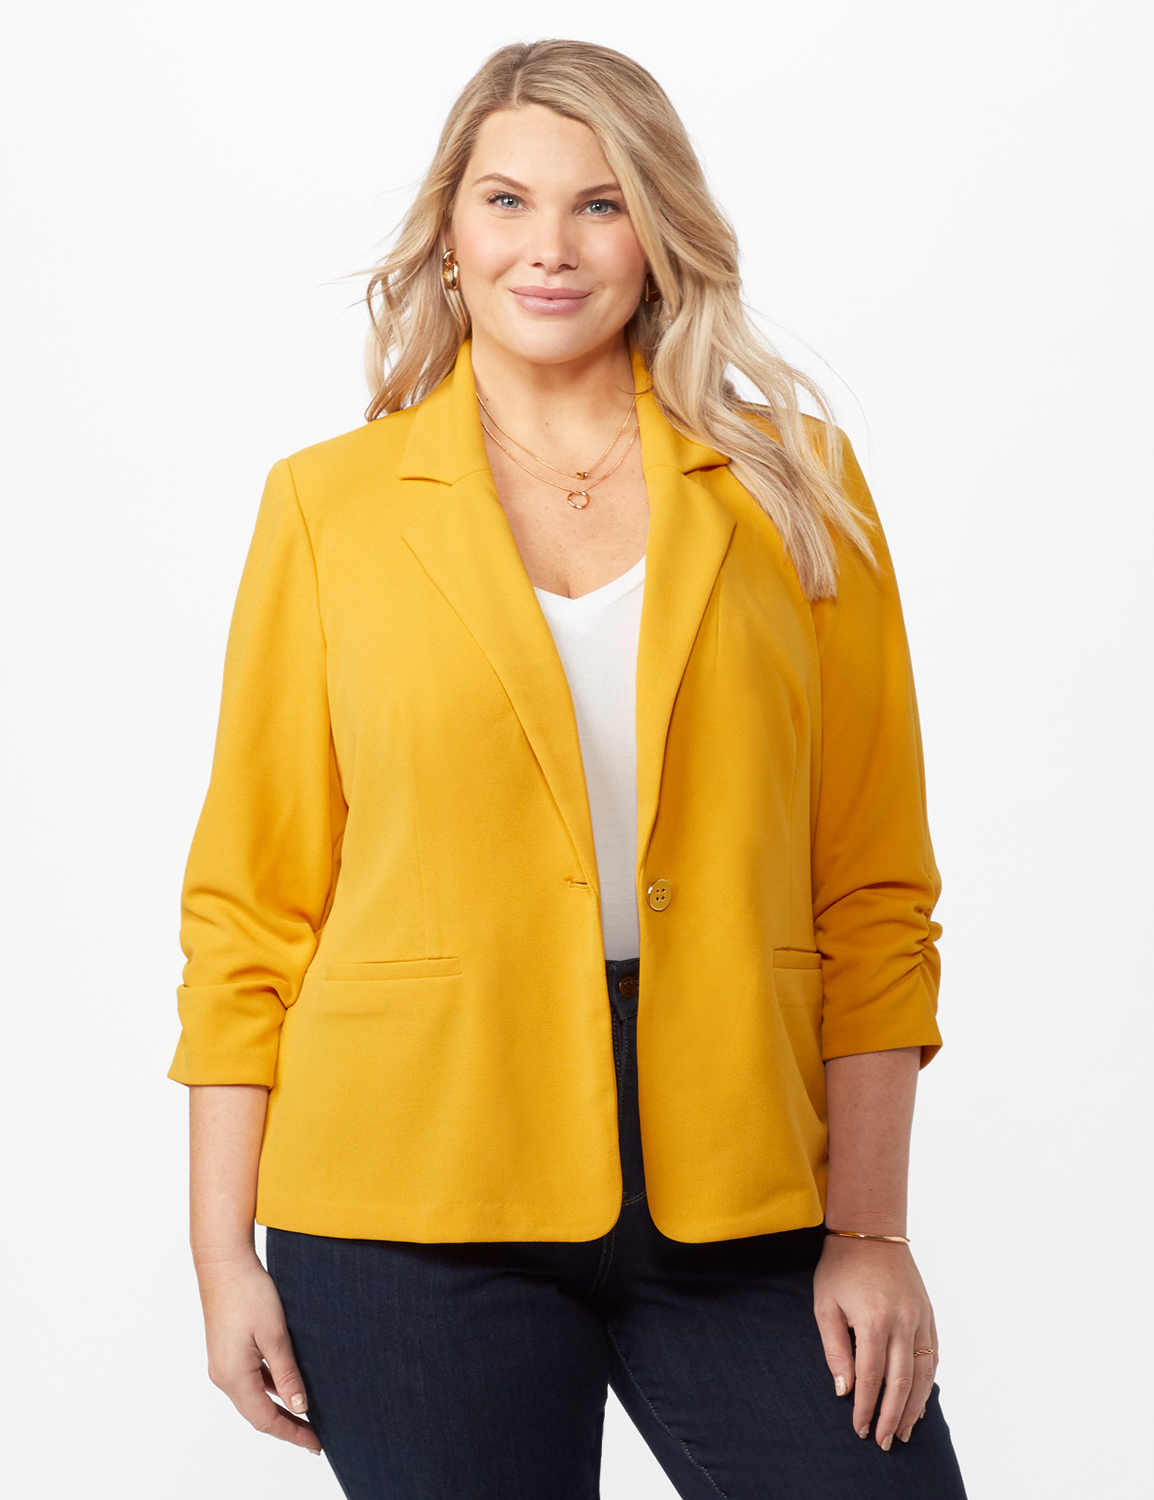 Cinched Sleeve One pocket Notch Collar Topper Plus -Gold - Front